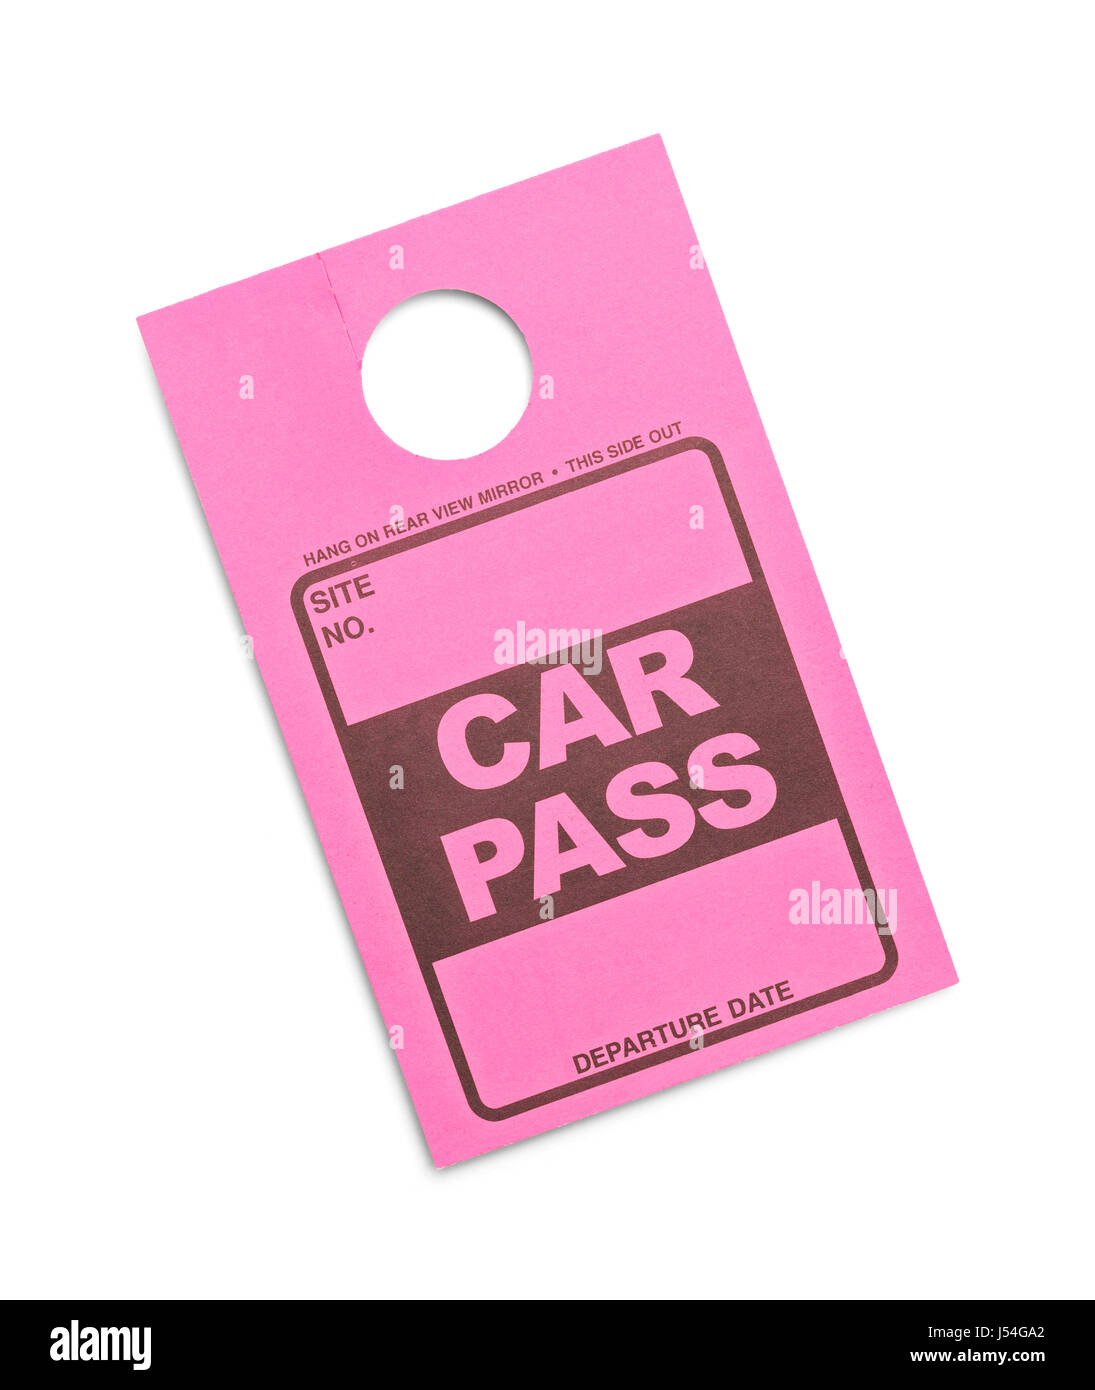 Pink Parking Permit Car Pass Isolated on White Background. Stock Photo